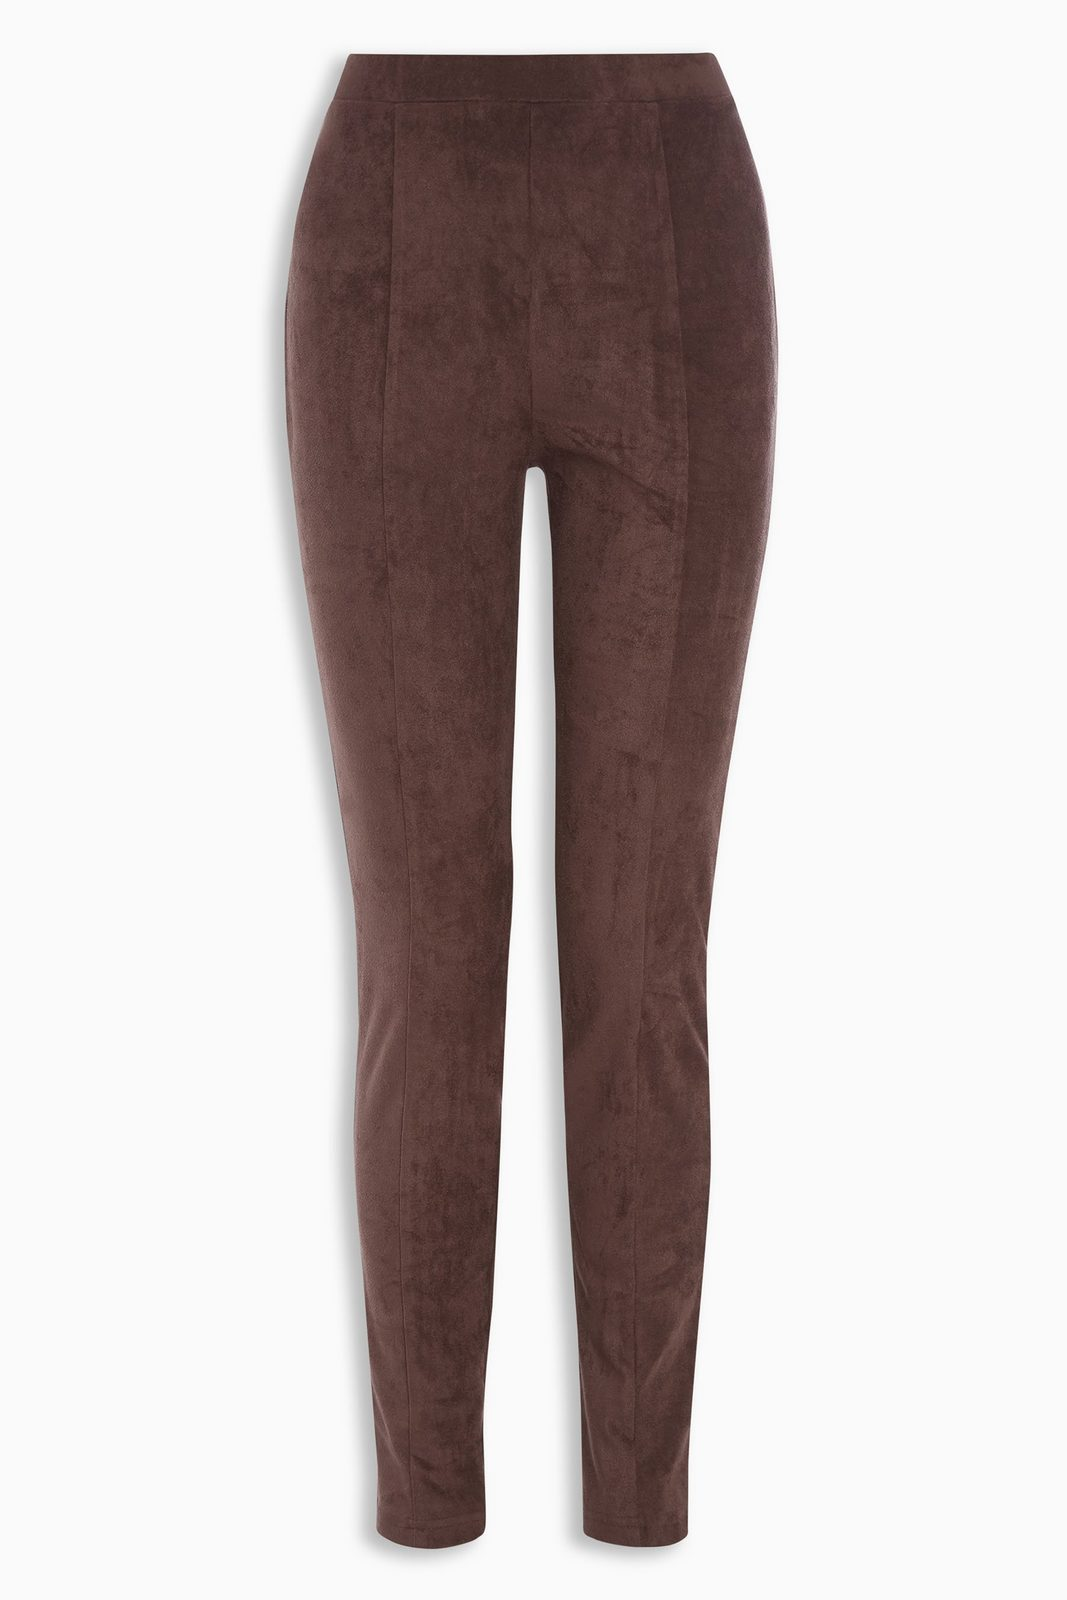 Next Velourslederimitat-Leggings